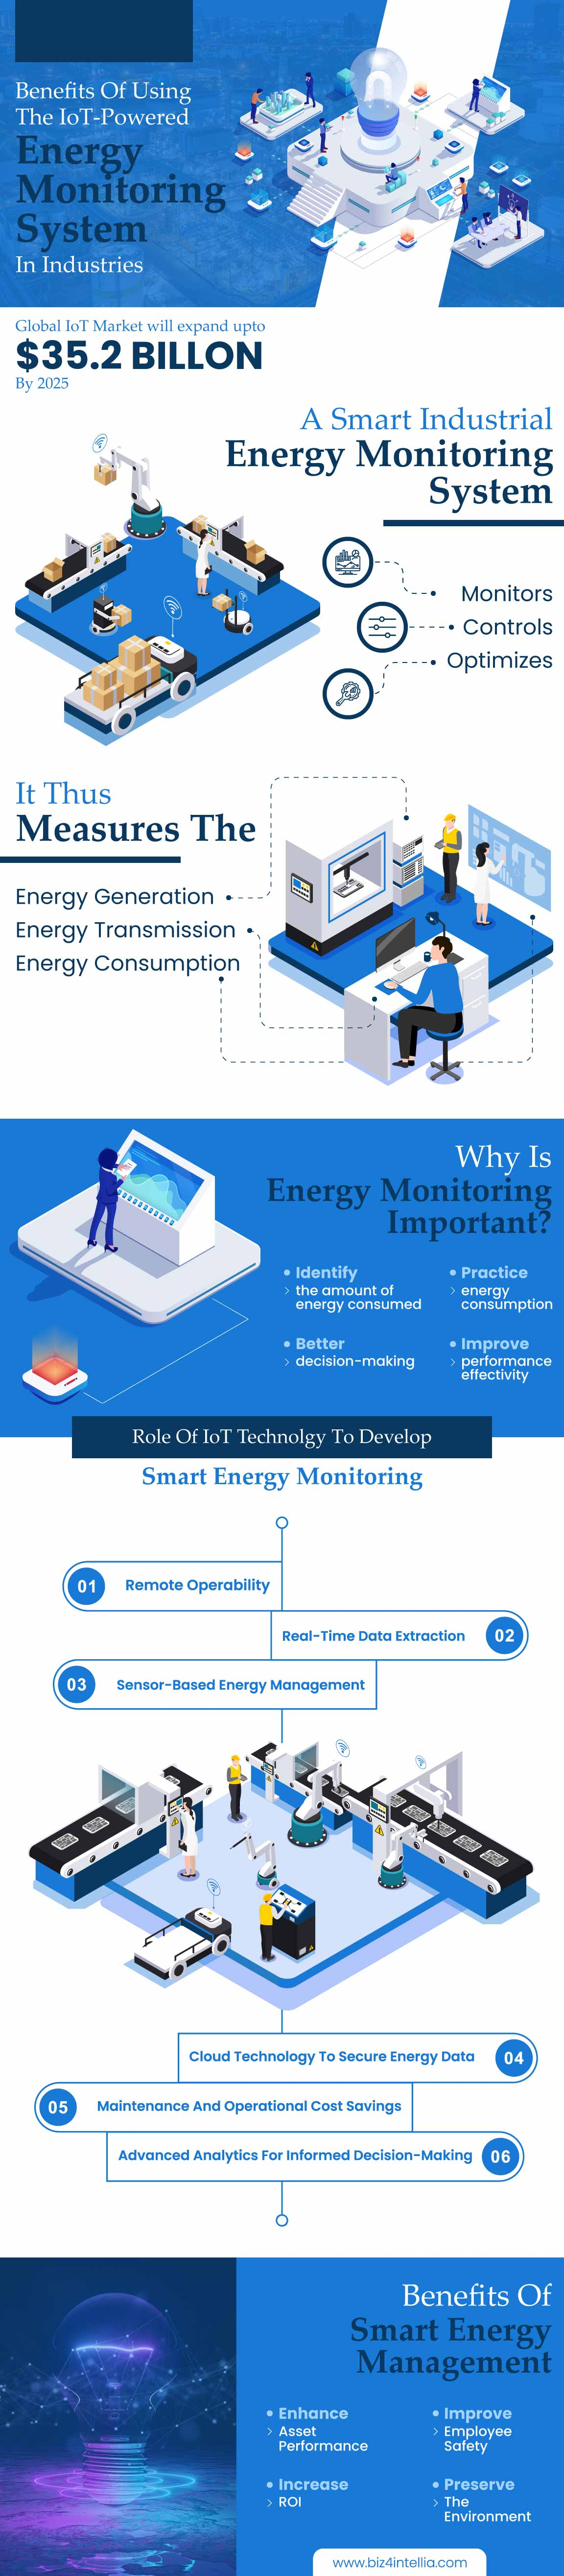 benefits-of-using-the-iot-powered-energy-monitoring-system-in-industries